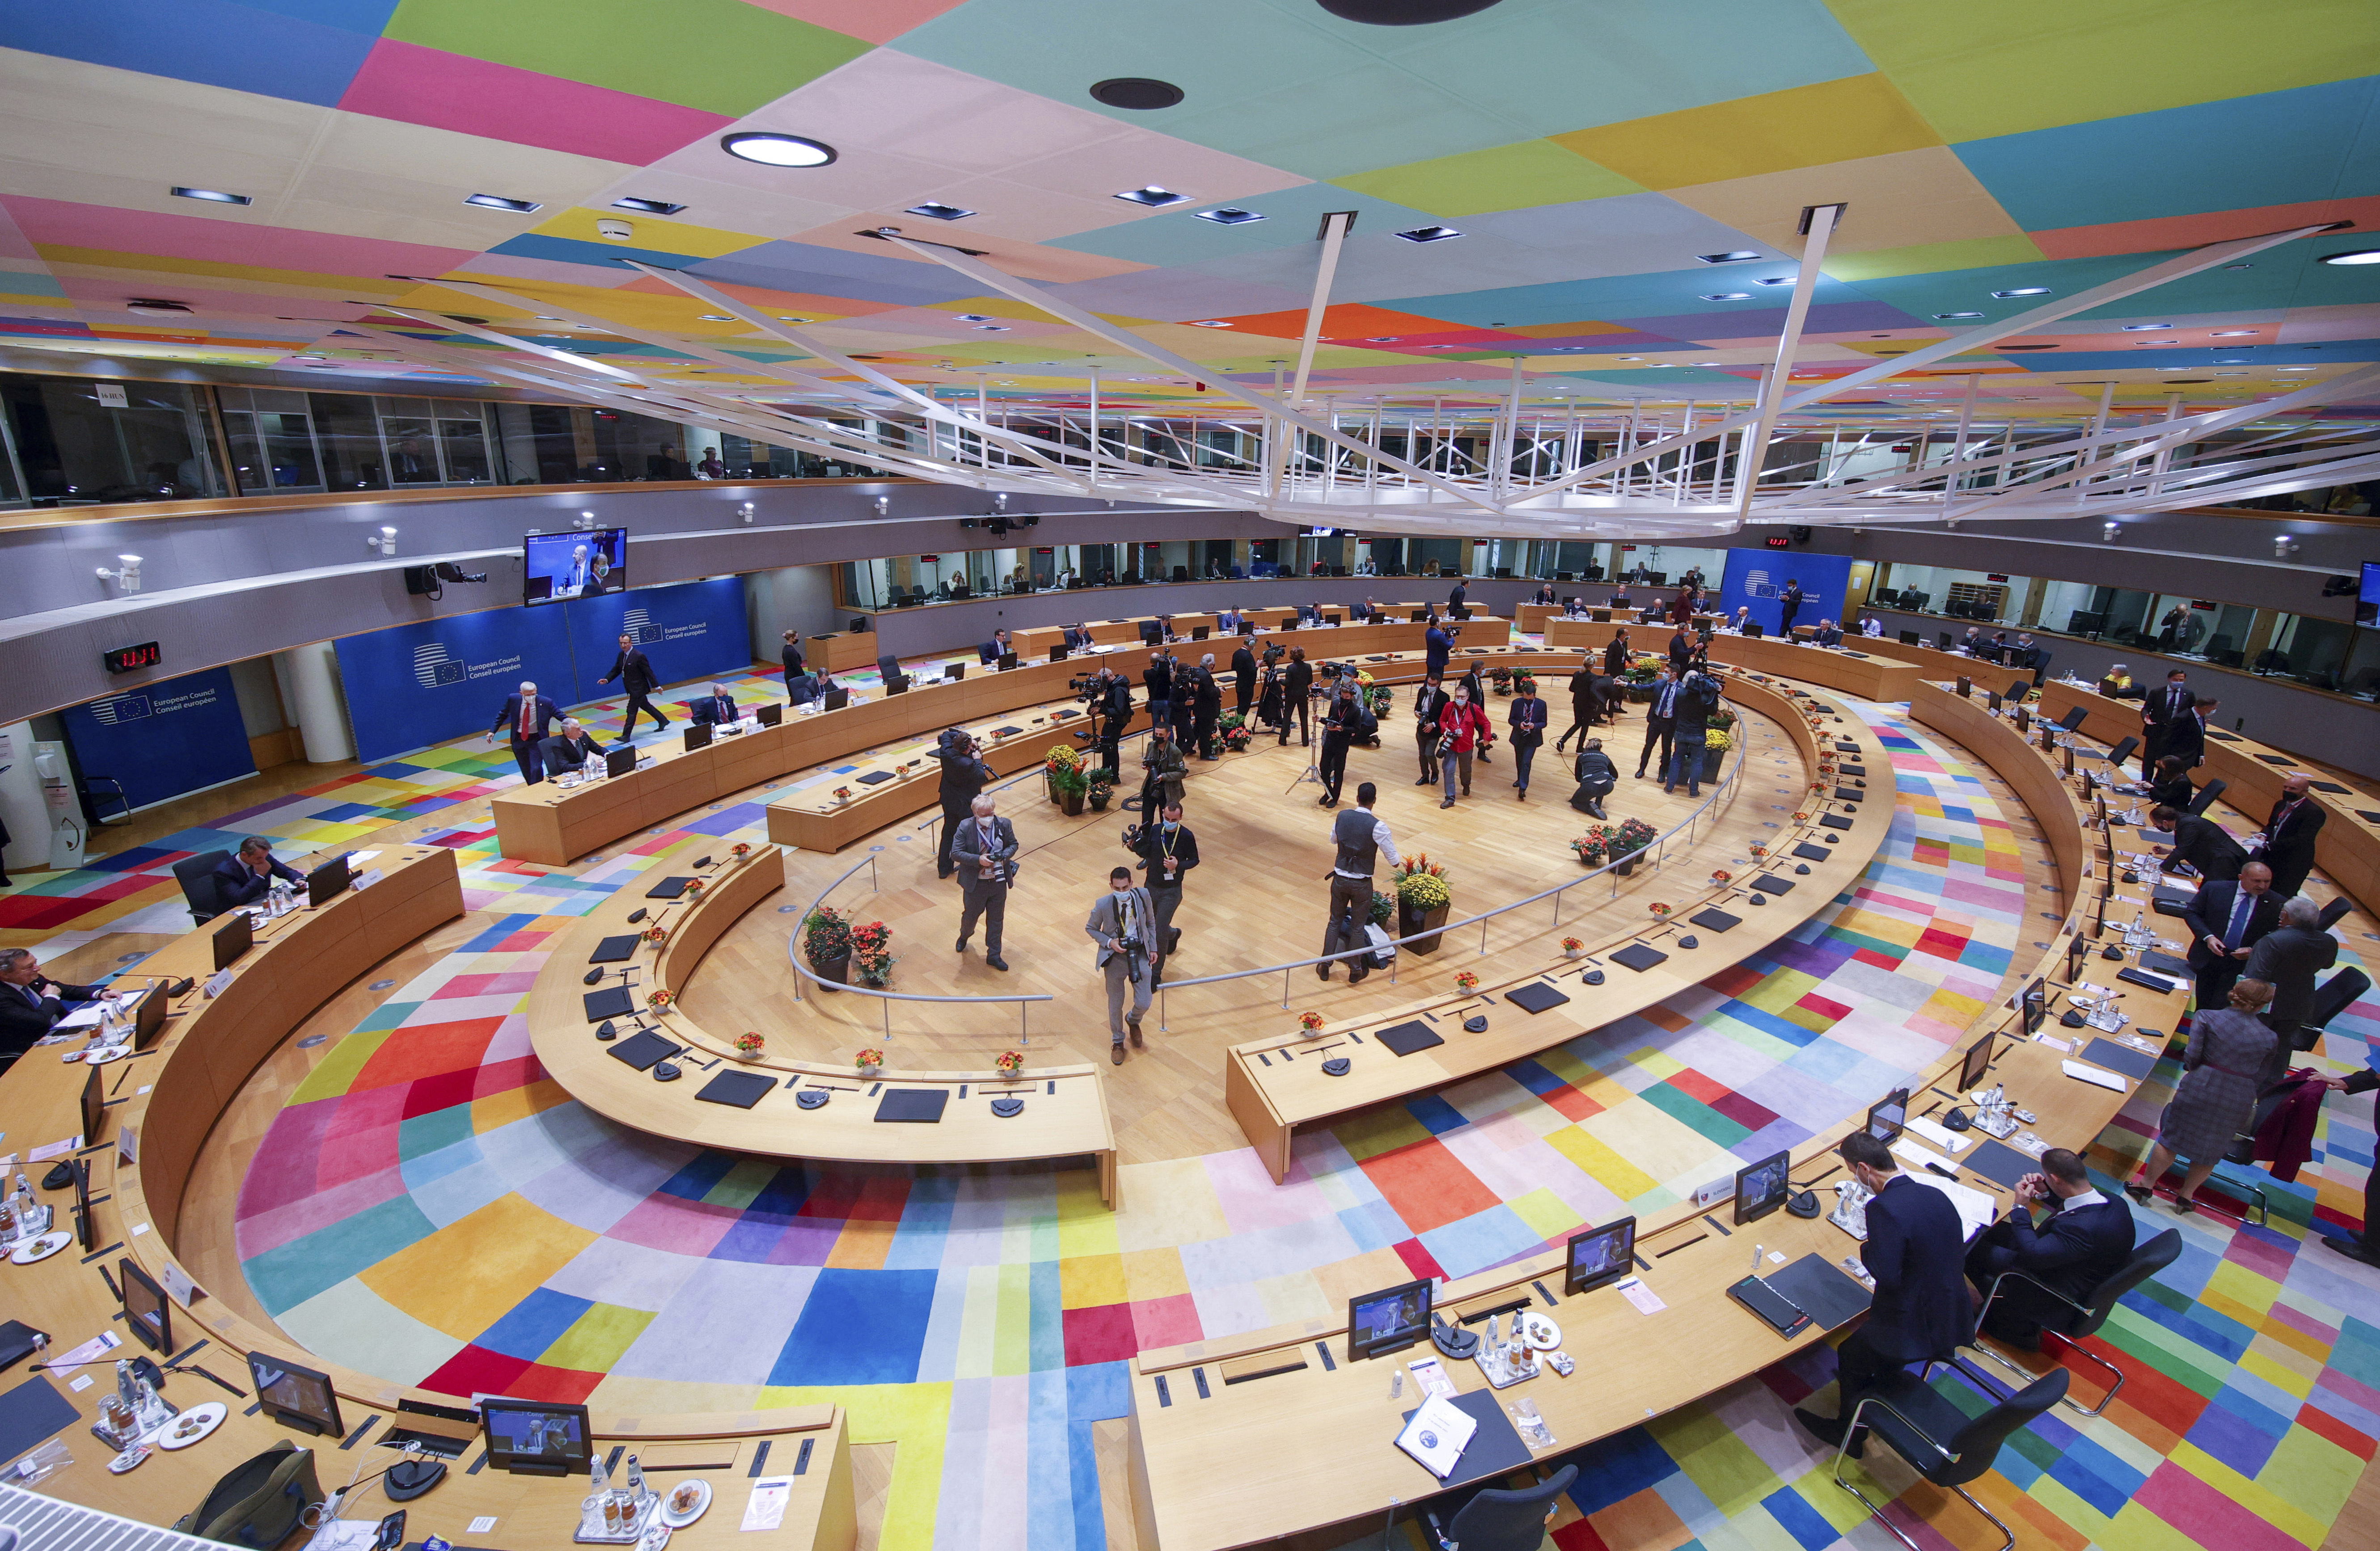 European Union leaders conclude on Friday a two-day summit in Brussels in which they discussed pressing issues including climate change.